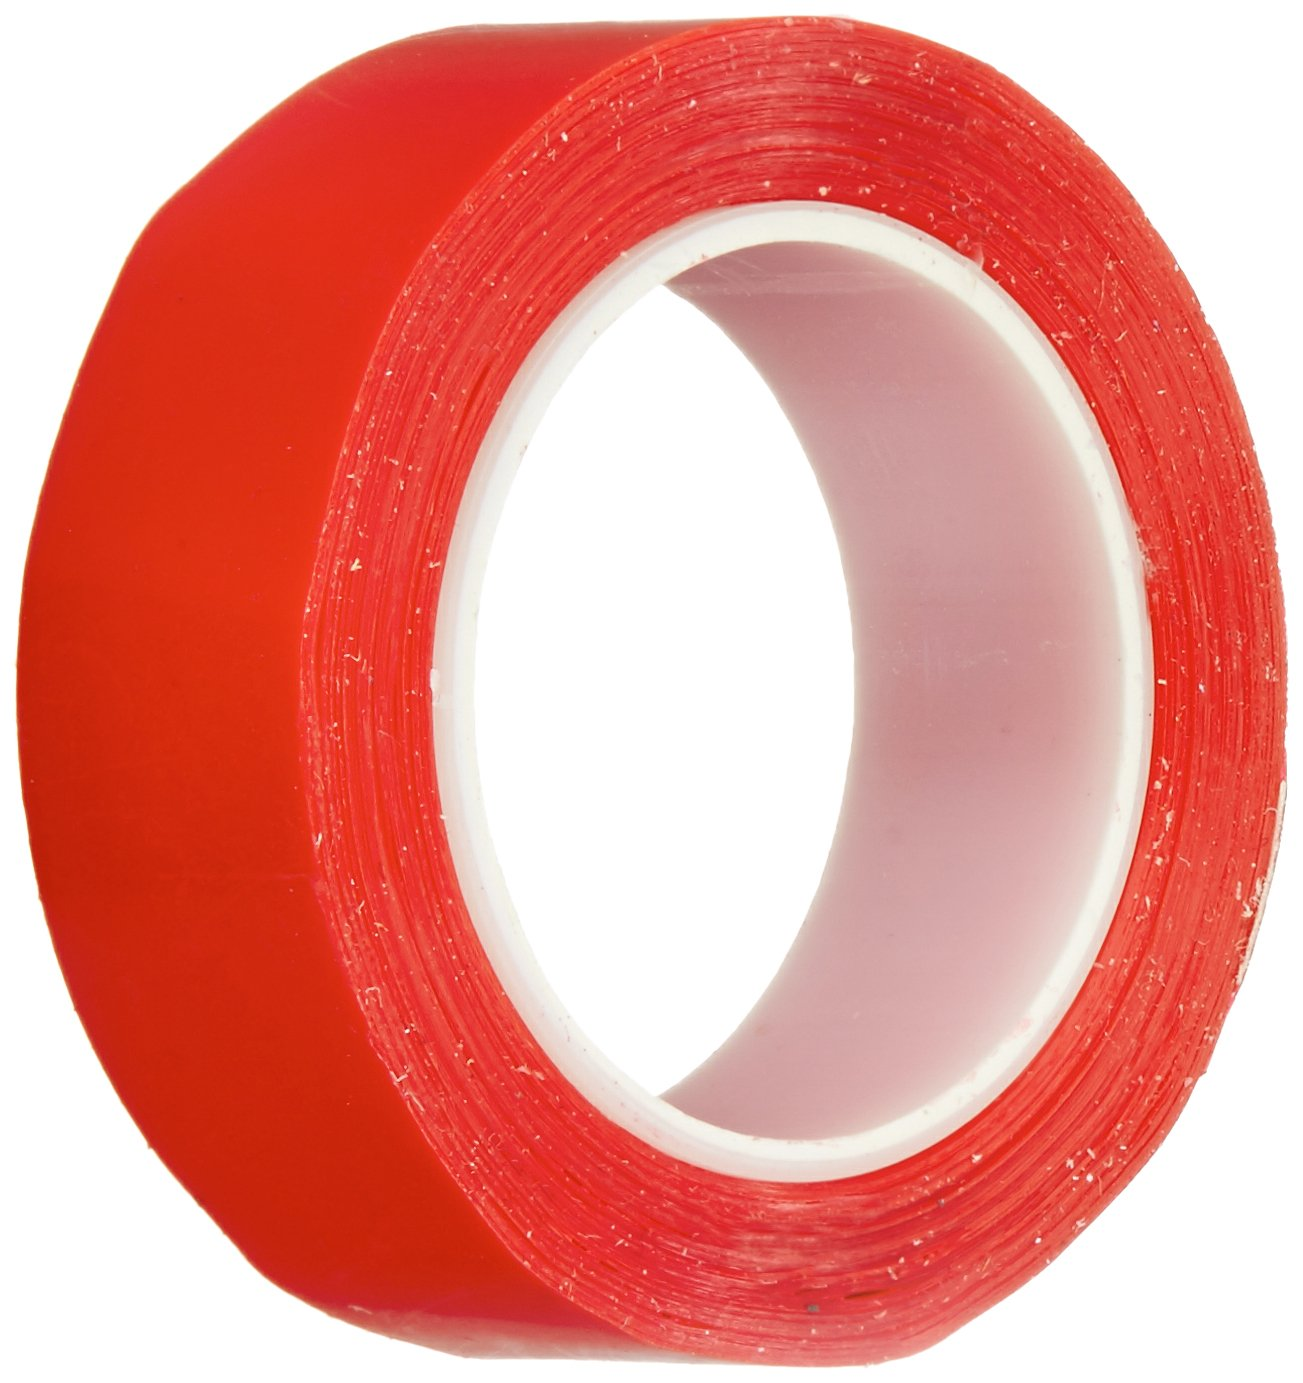 HeliMax Blade Tracking Tape, Red